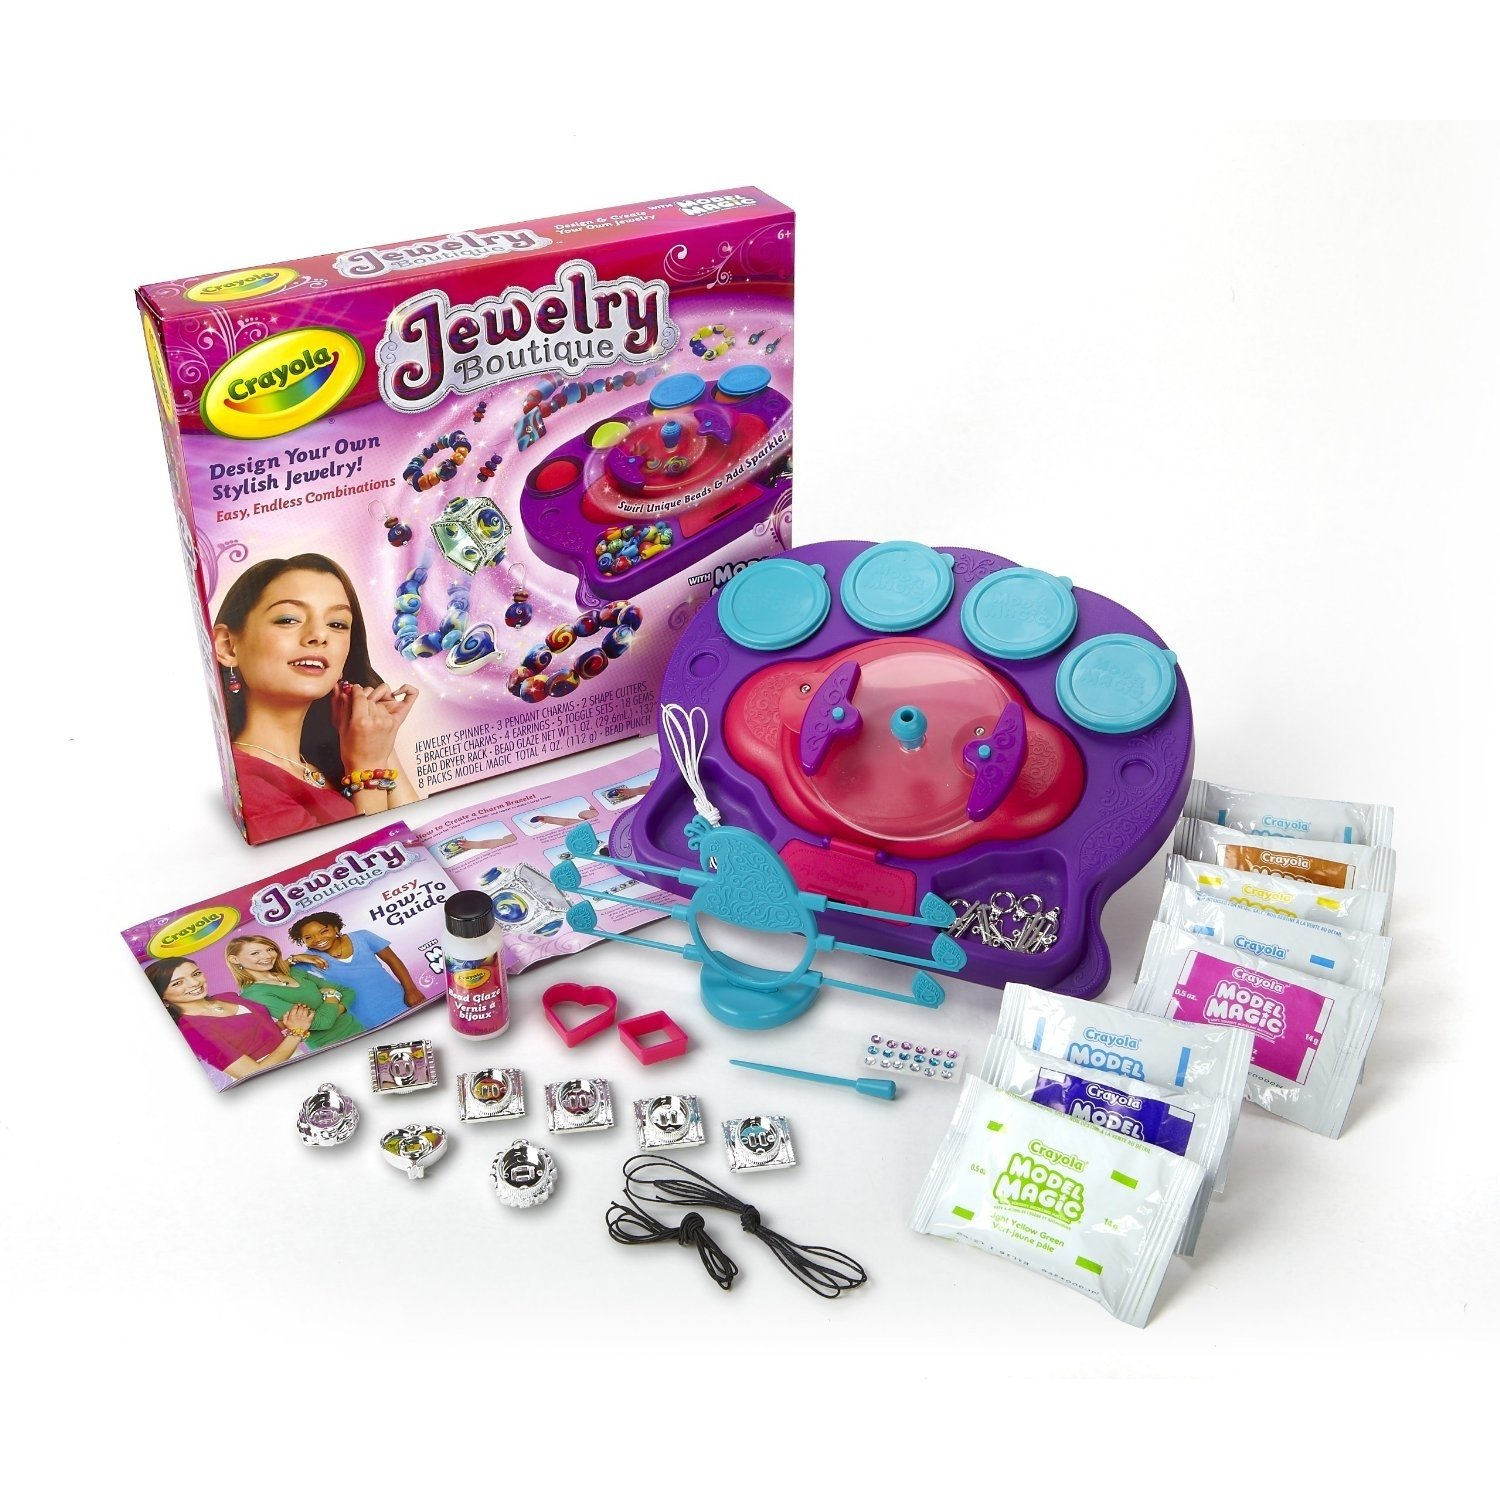 10 Most Recommended Gift Ideas For Year Old Daughter 6 Birthday